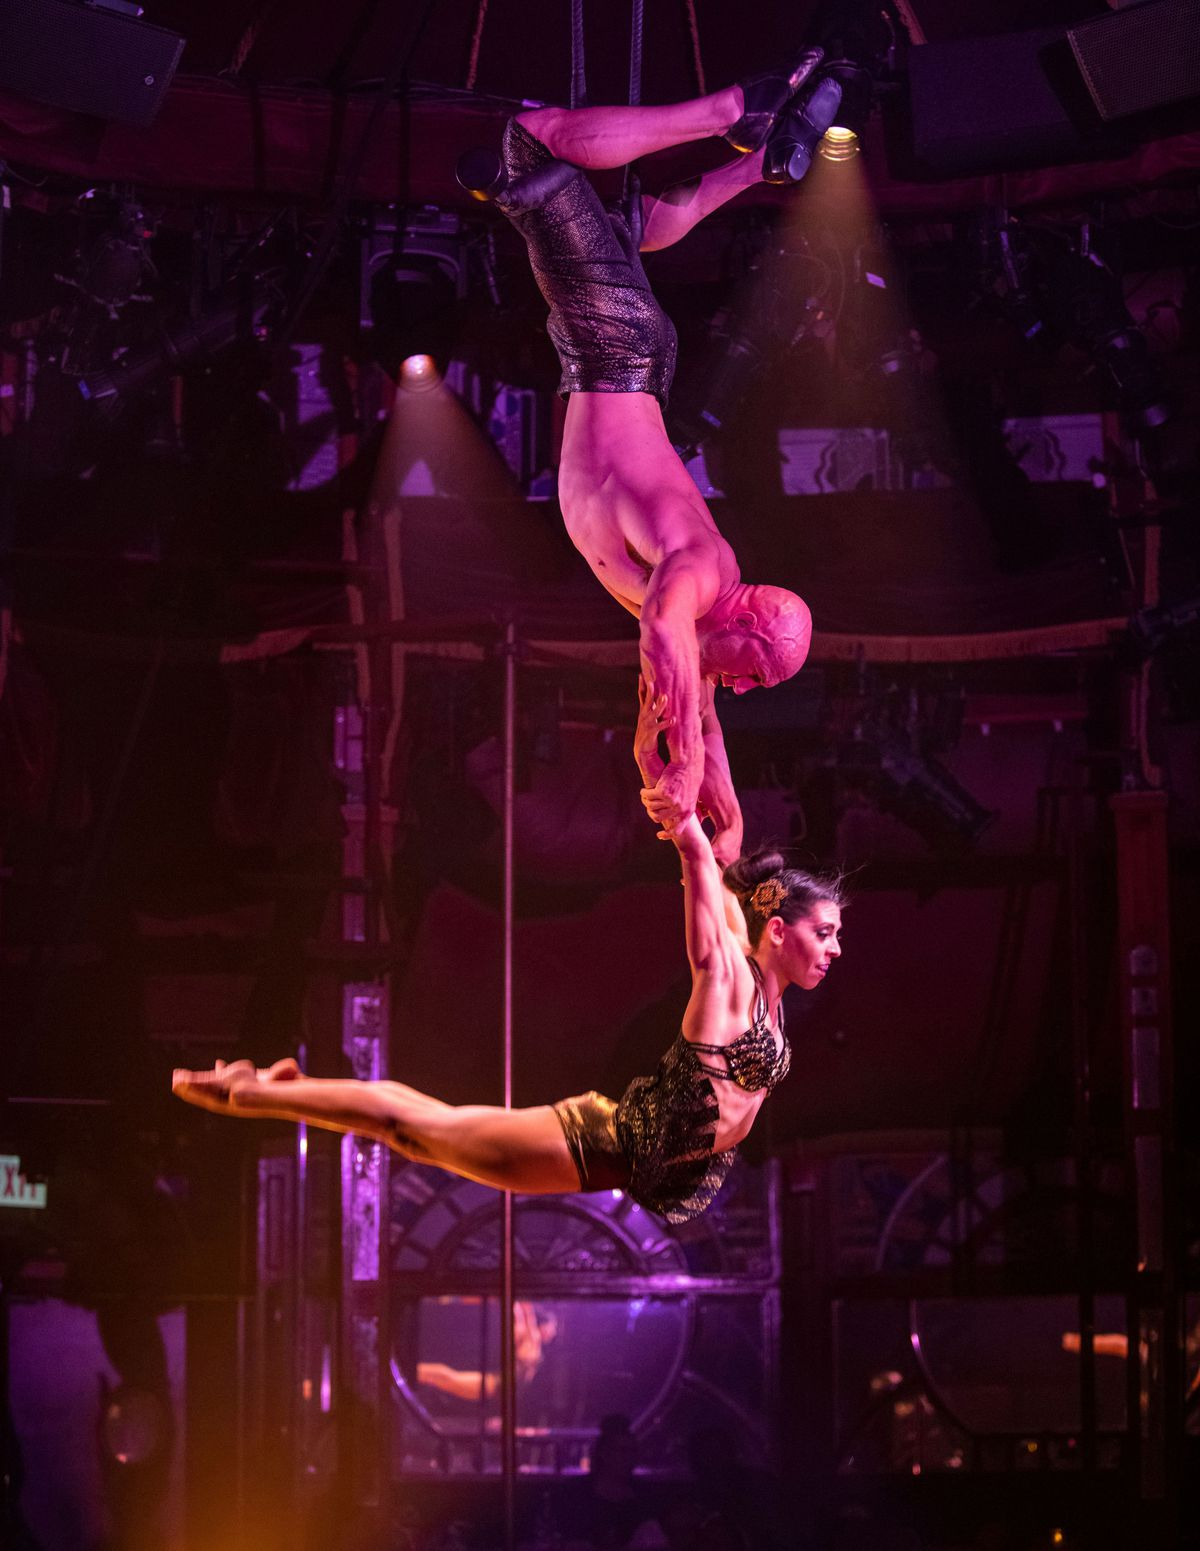 Teatro ZinZanni's Duo 19 features aerialists Cassie Cutler and Oliver Parkinson.